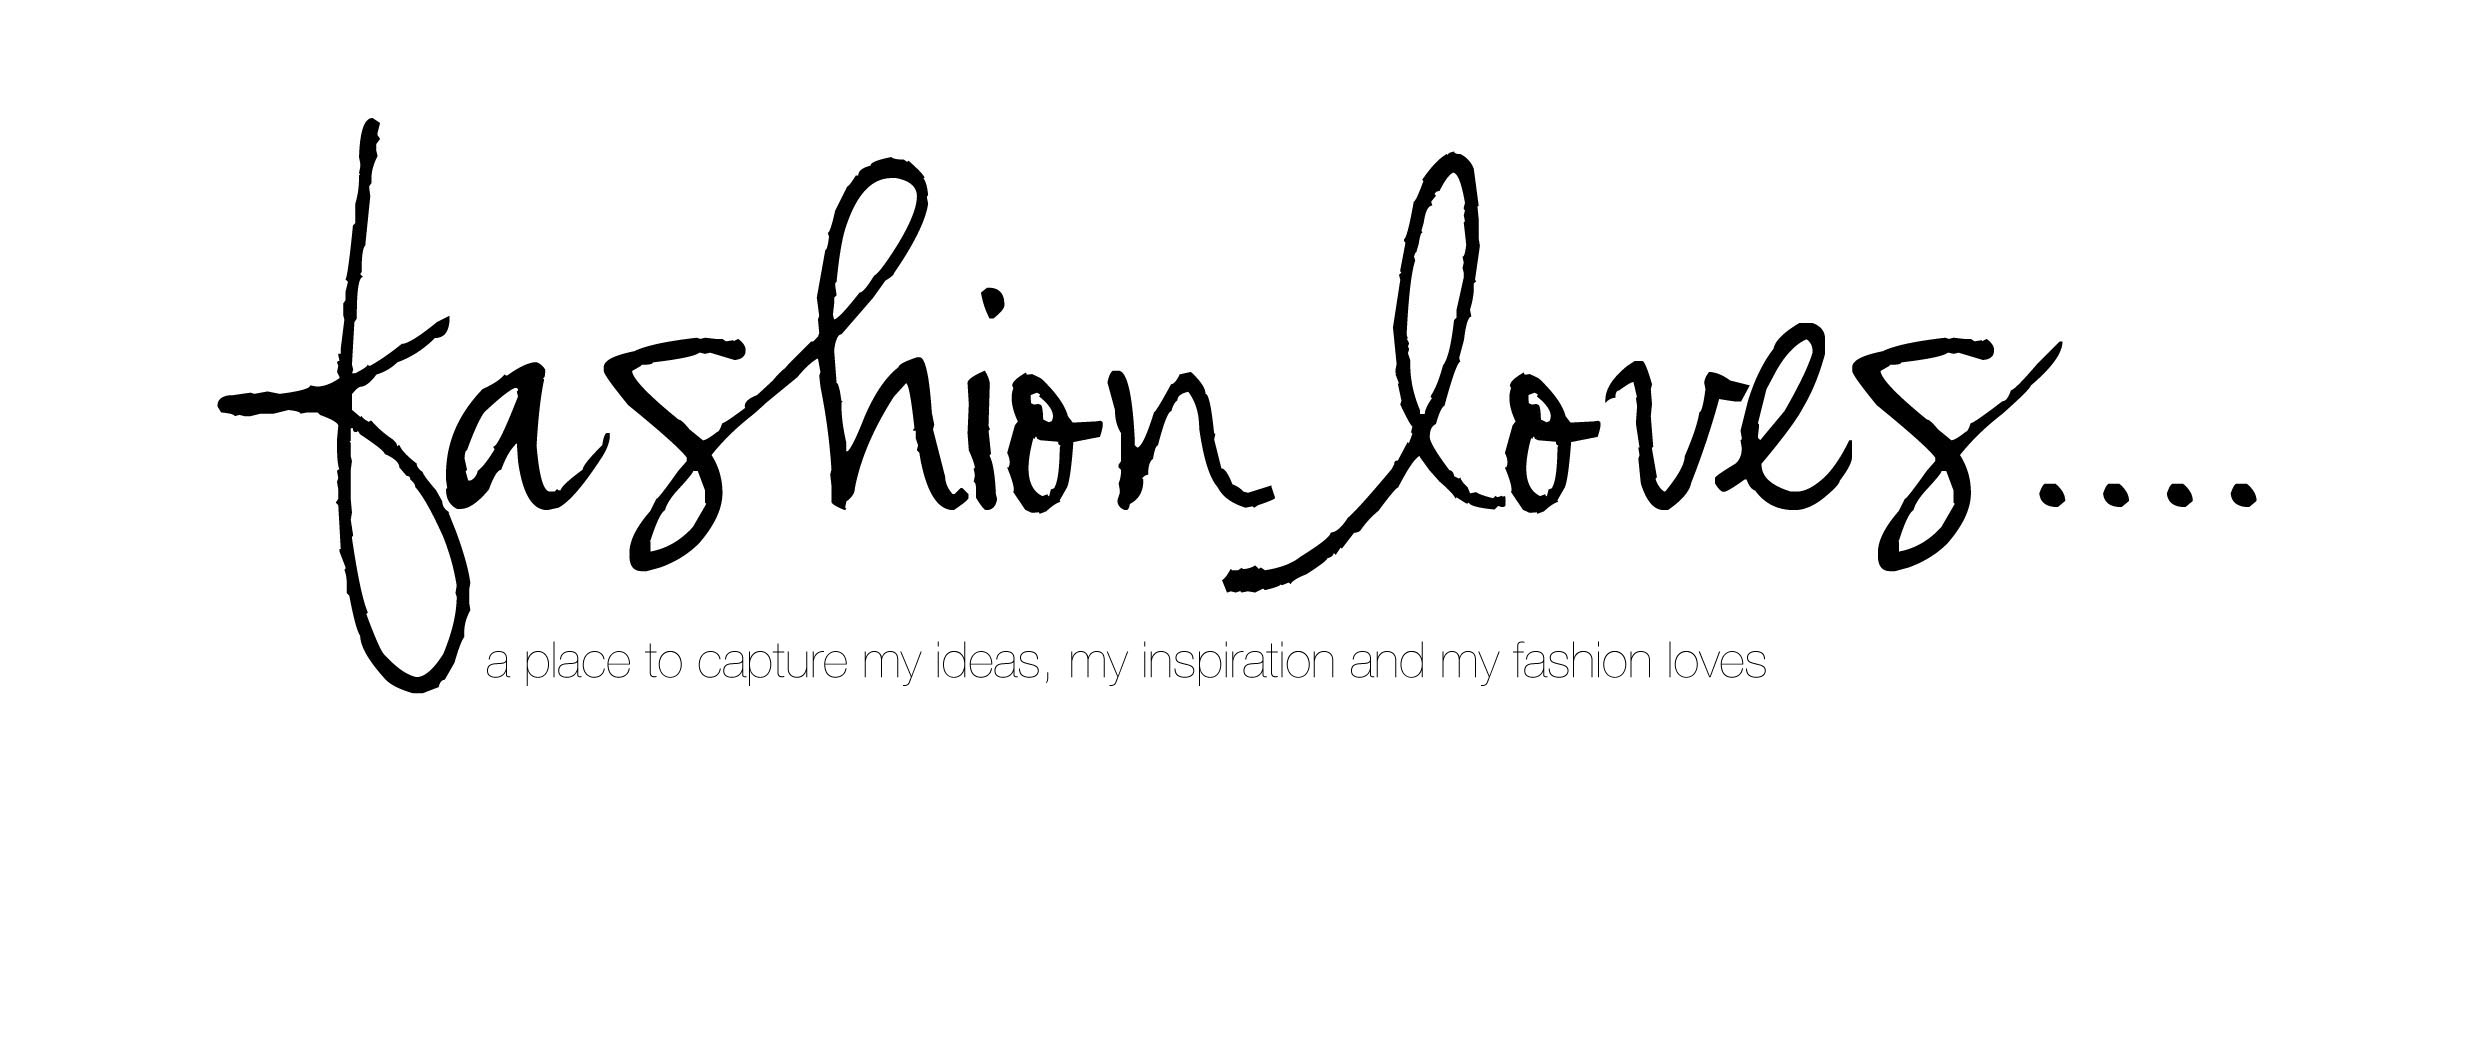 fashion loves...